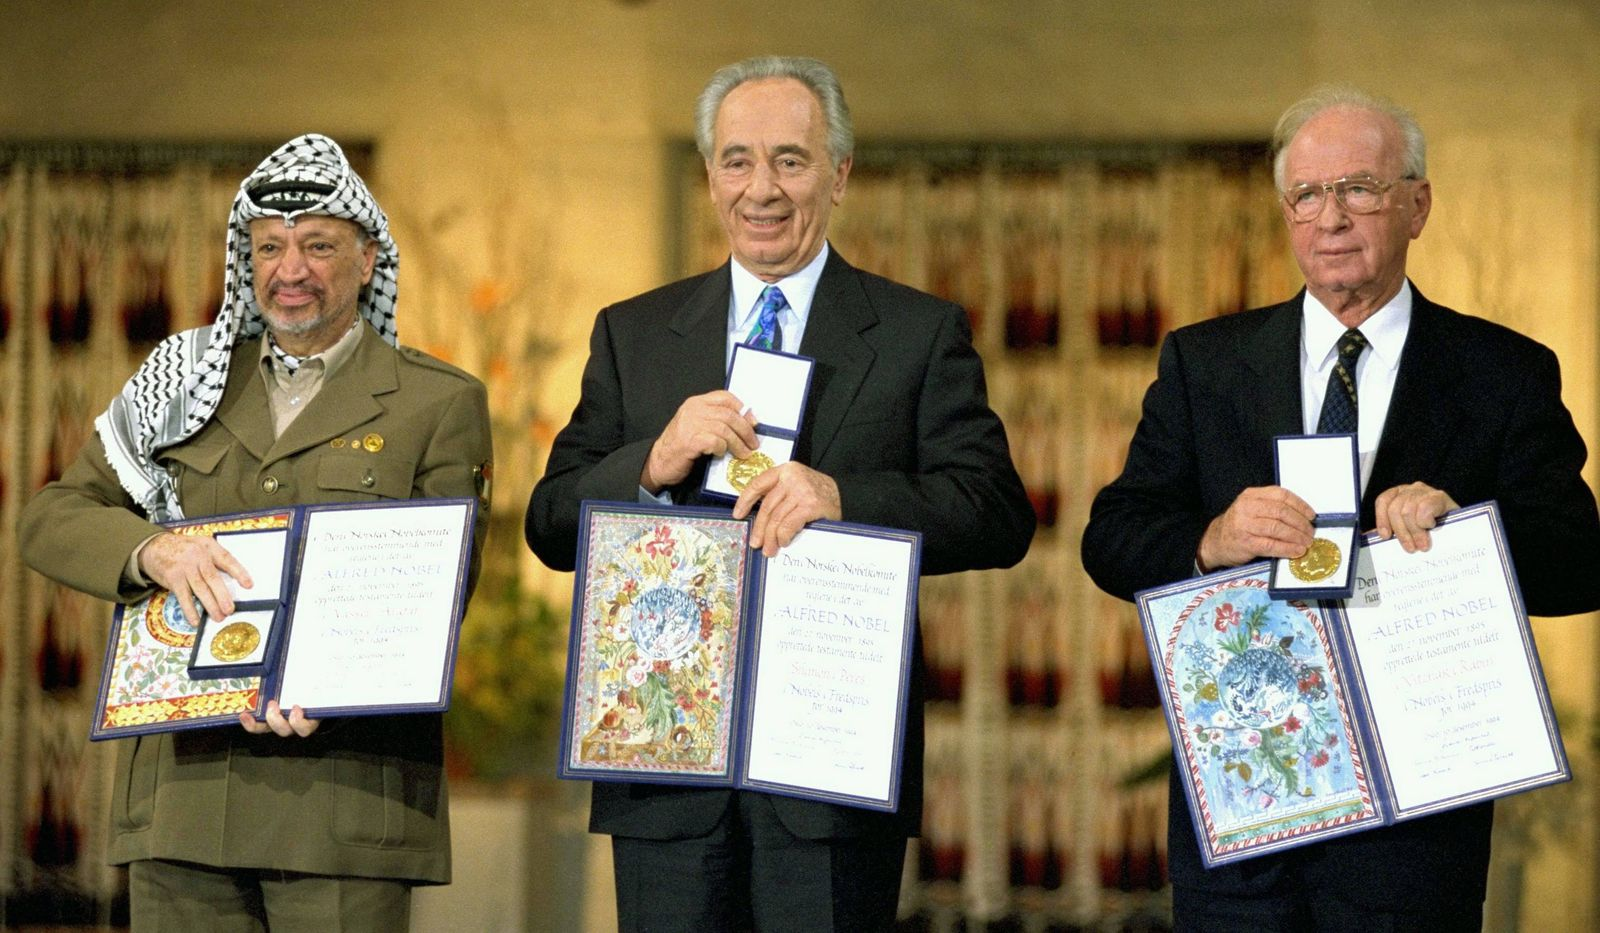 Bilder des Tages Photograph of Yitzhak Rabin, Shimon Peres and Yasser Arafat receiving the Nobel Peace Prize following